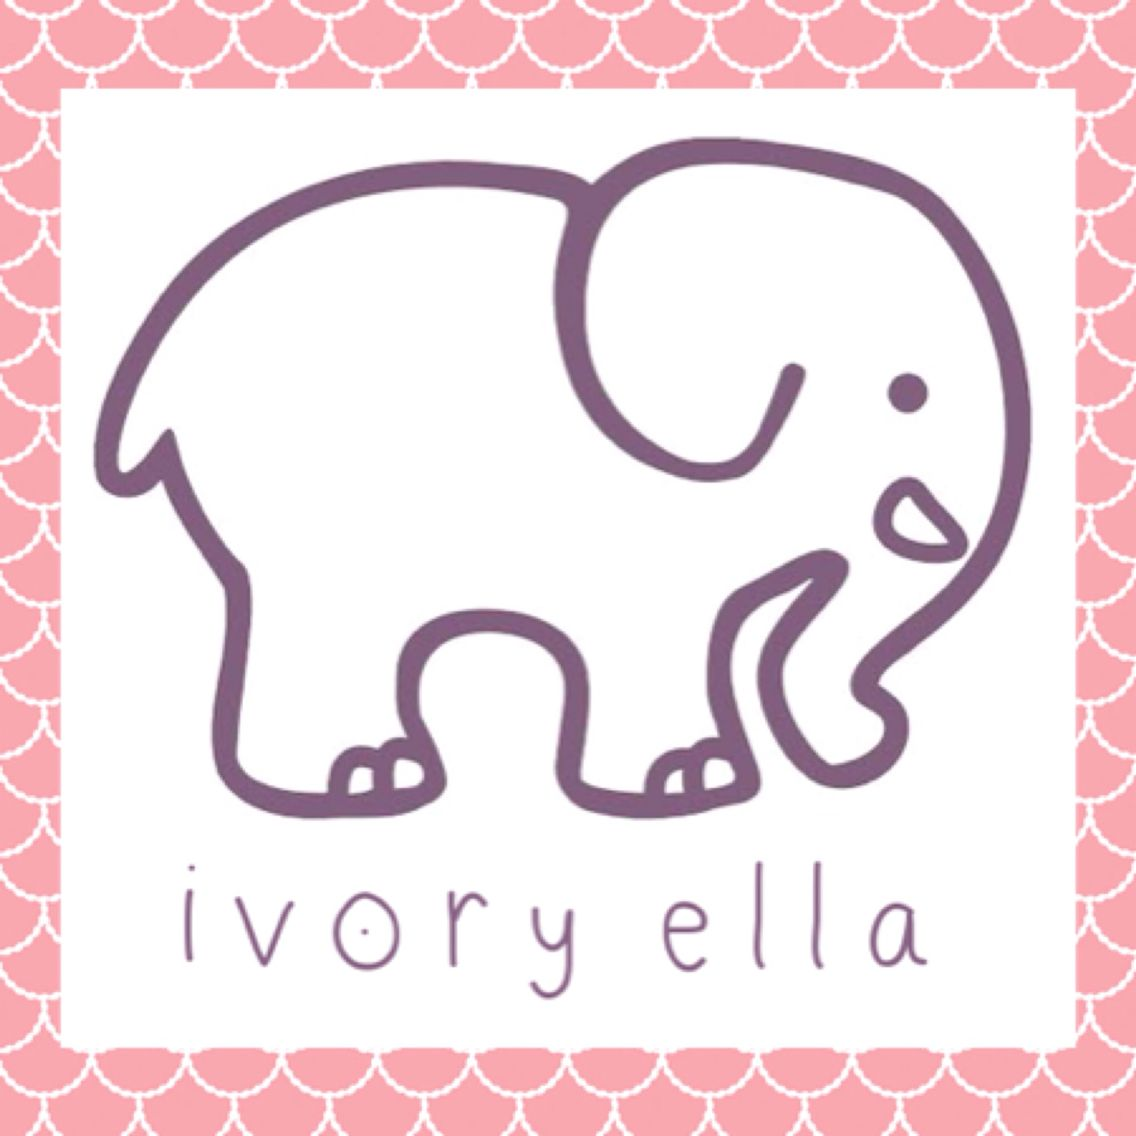 Buy And Ivory Ella Shirt And Save An Elephants Life 10